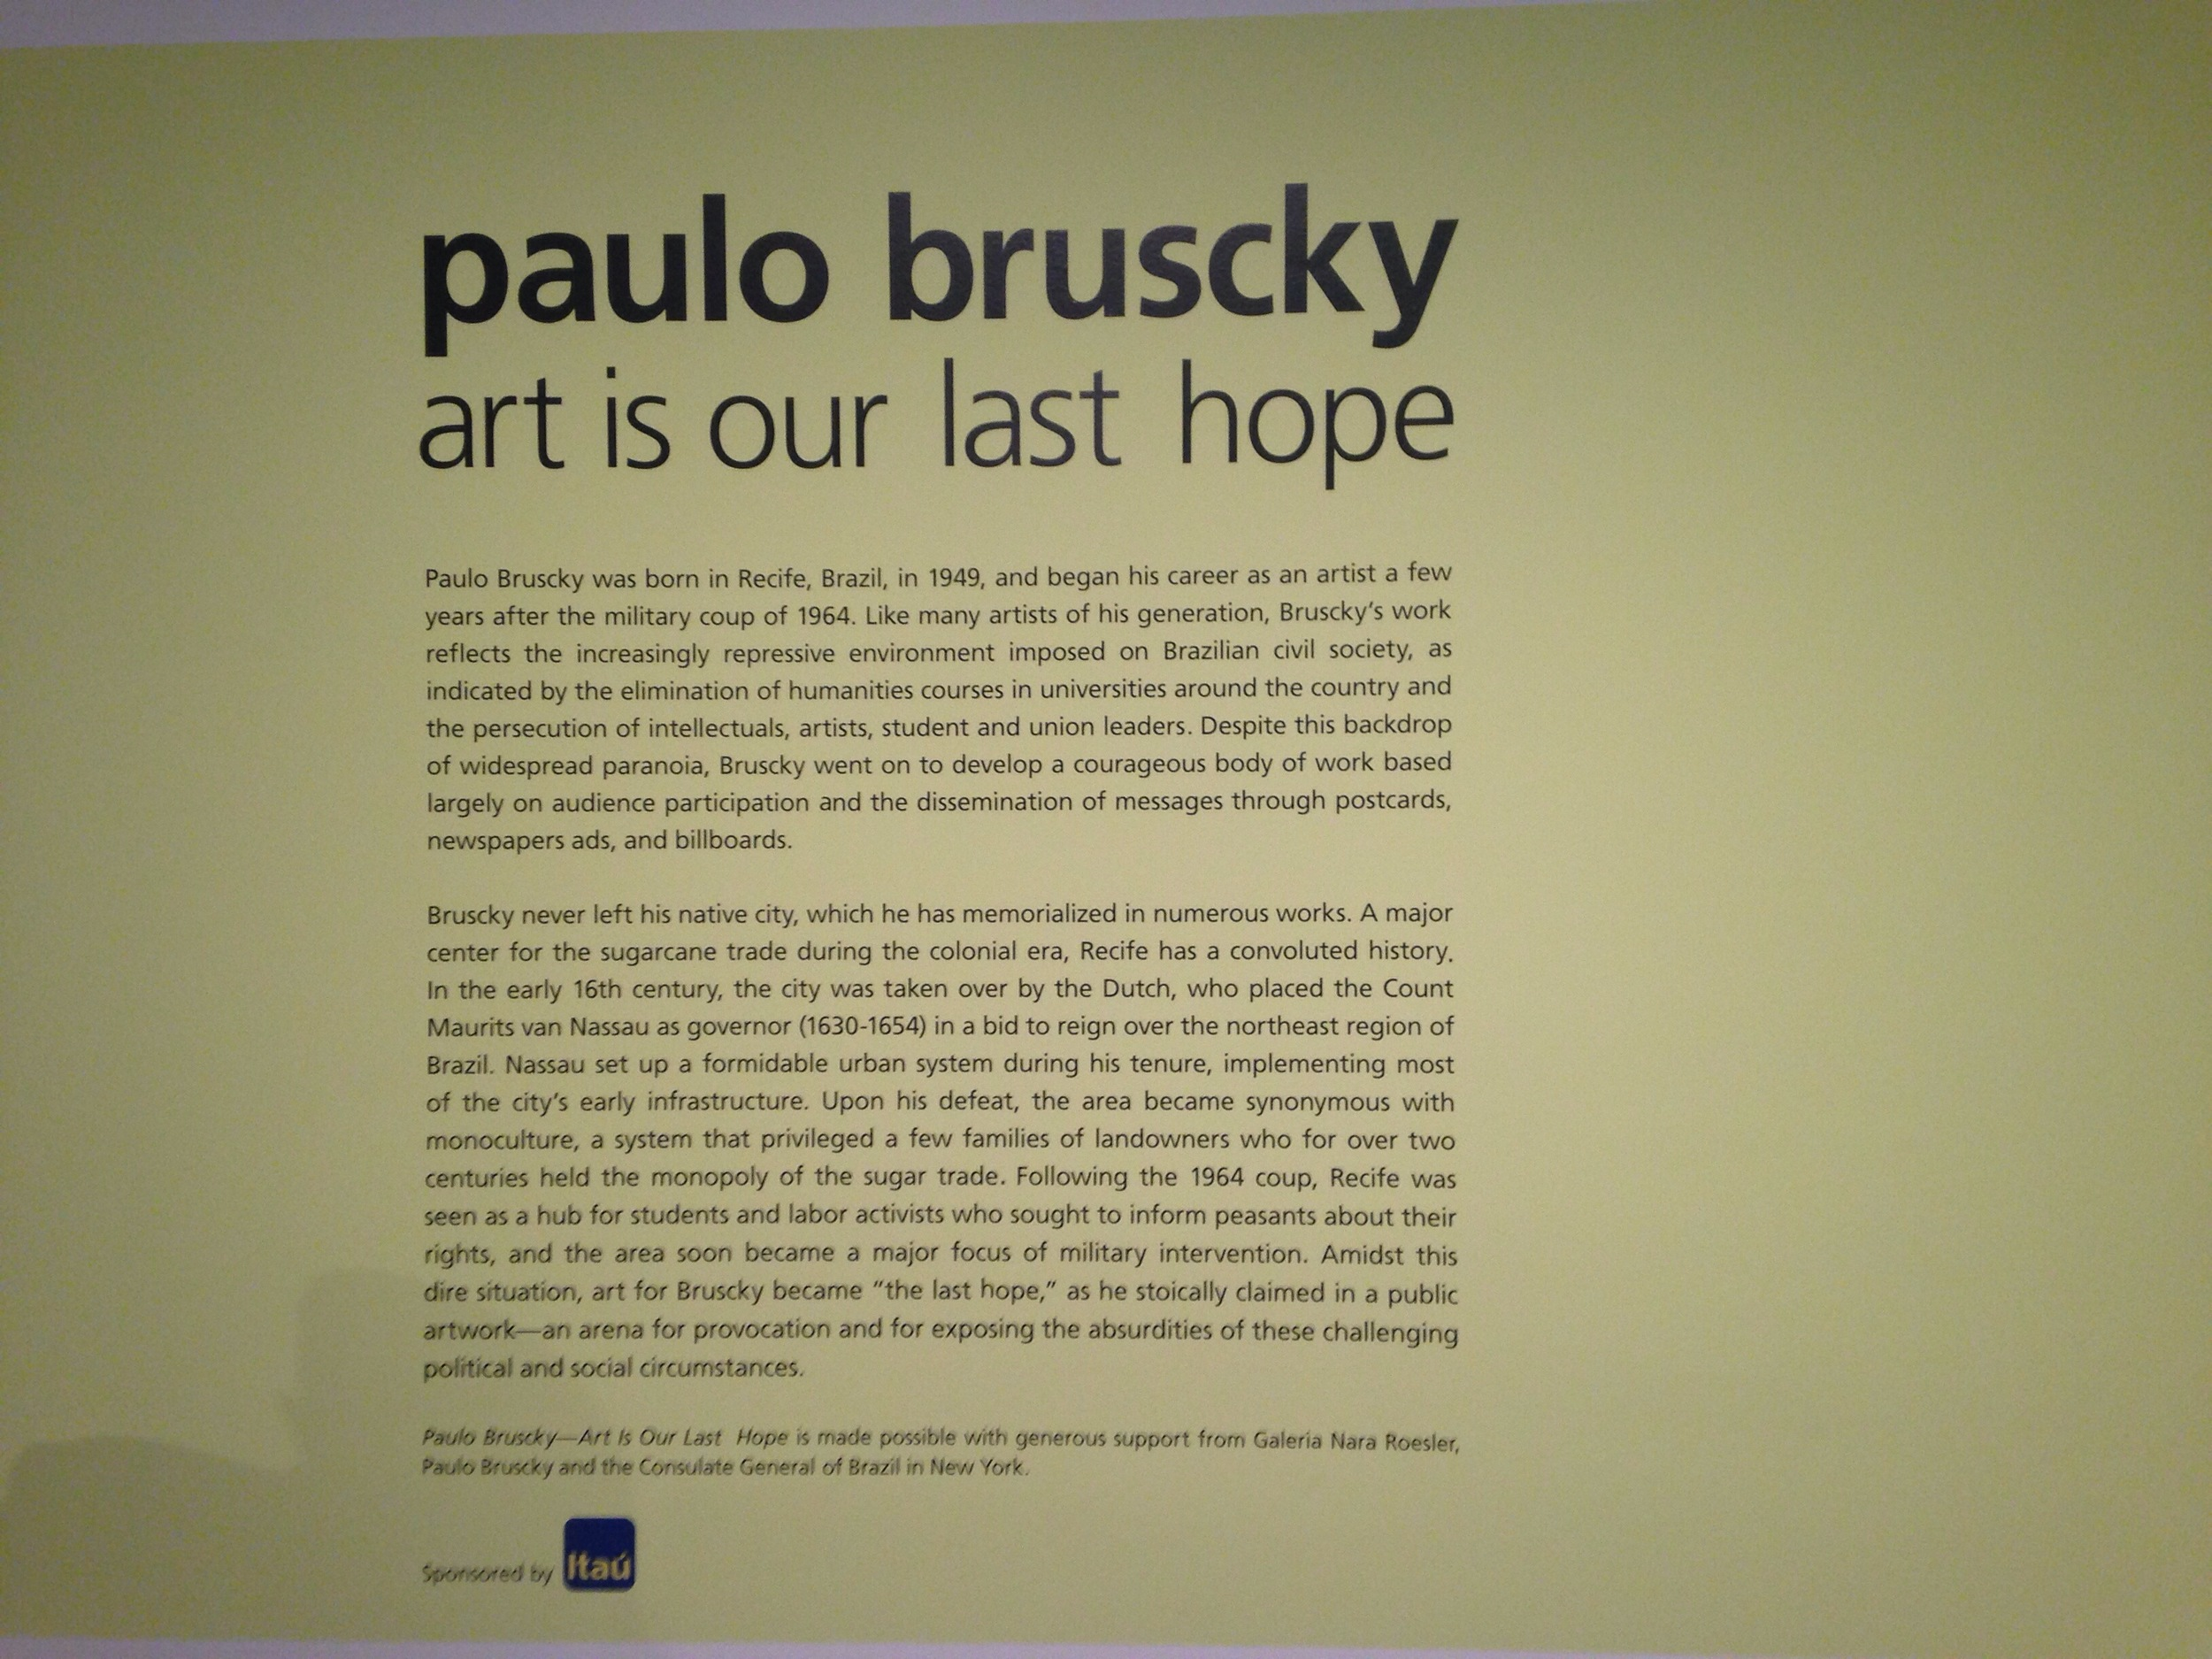 The first exhibit that I visited was Paulo Brusky's. A Brazilian activist and artist, his work is both thought provoking and inspiring.